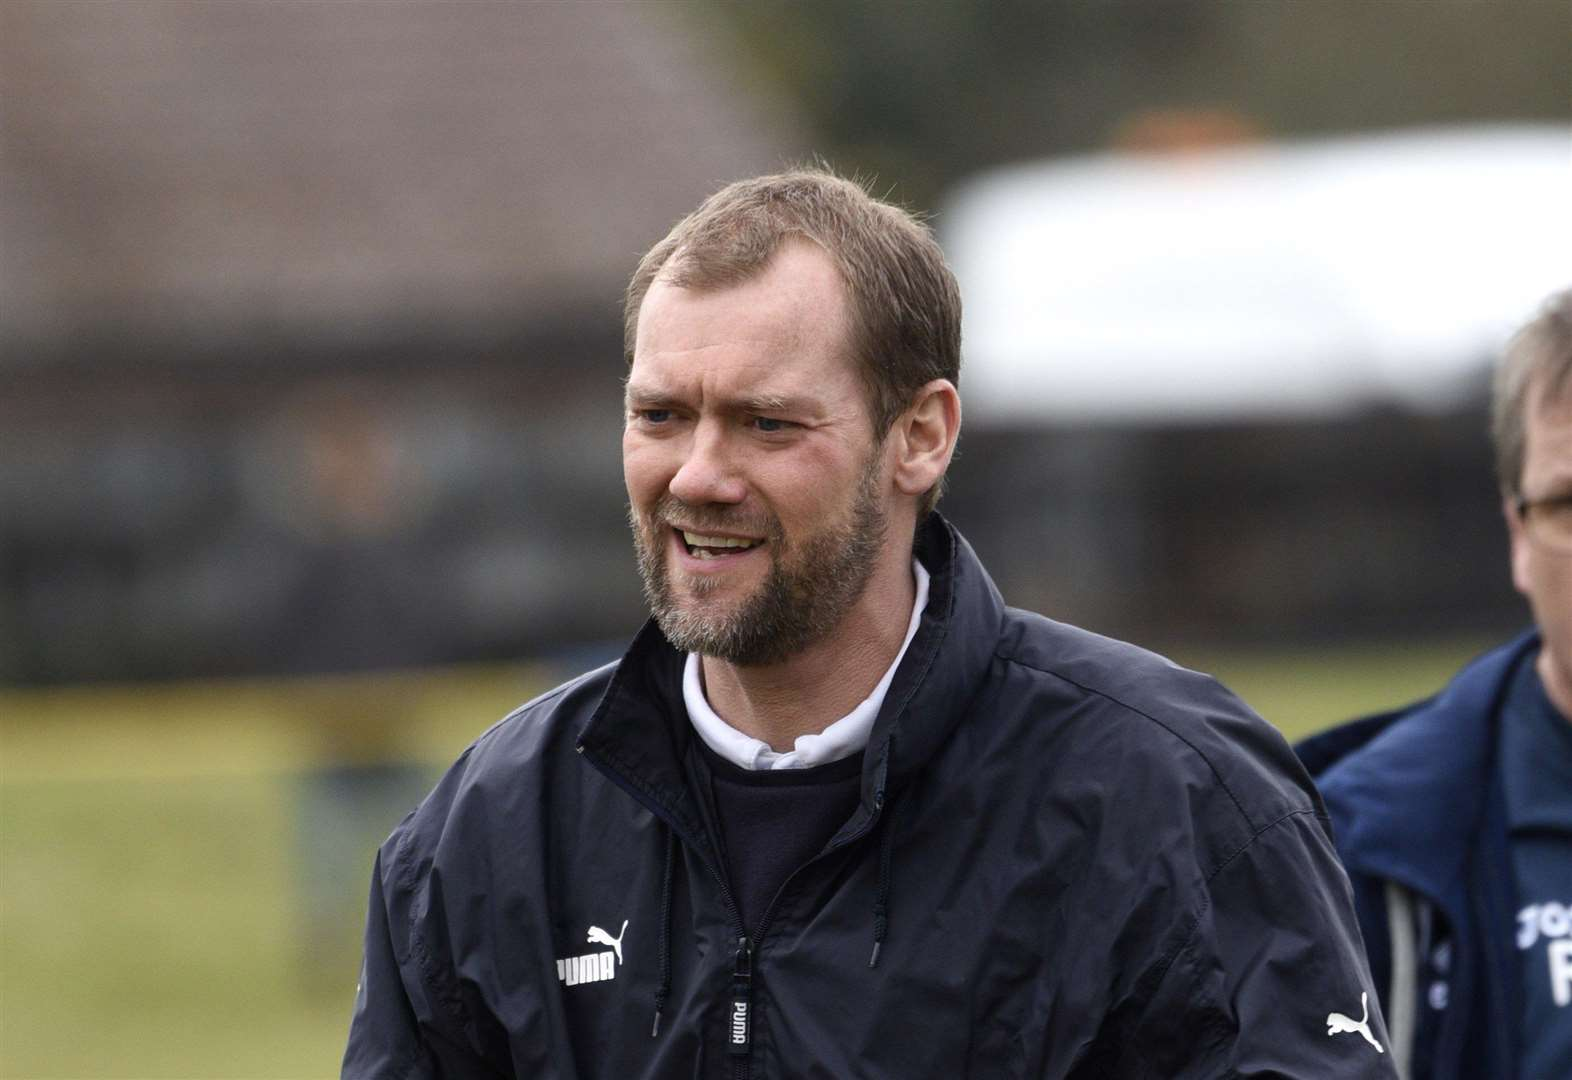 March Town FC manager Brett Whaley says chances of promotion re out of their hands after Lakenheath Thurlow Nunn League draw